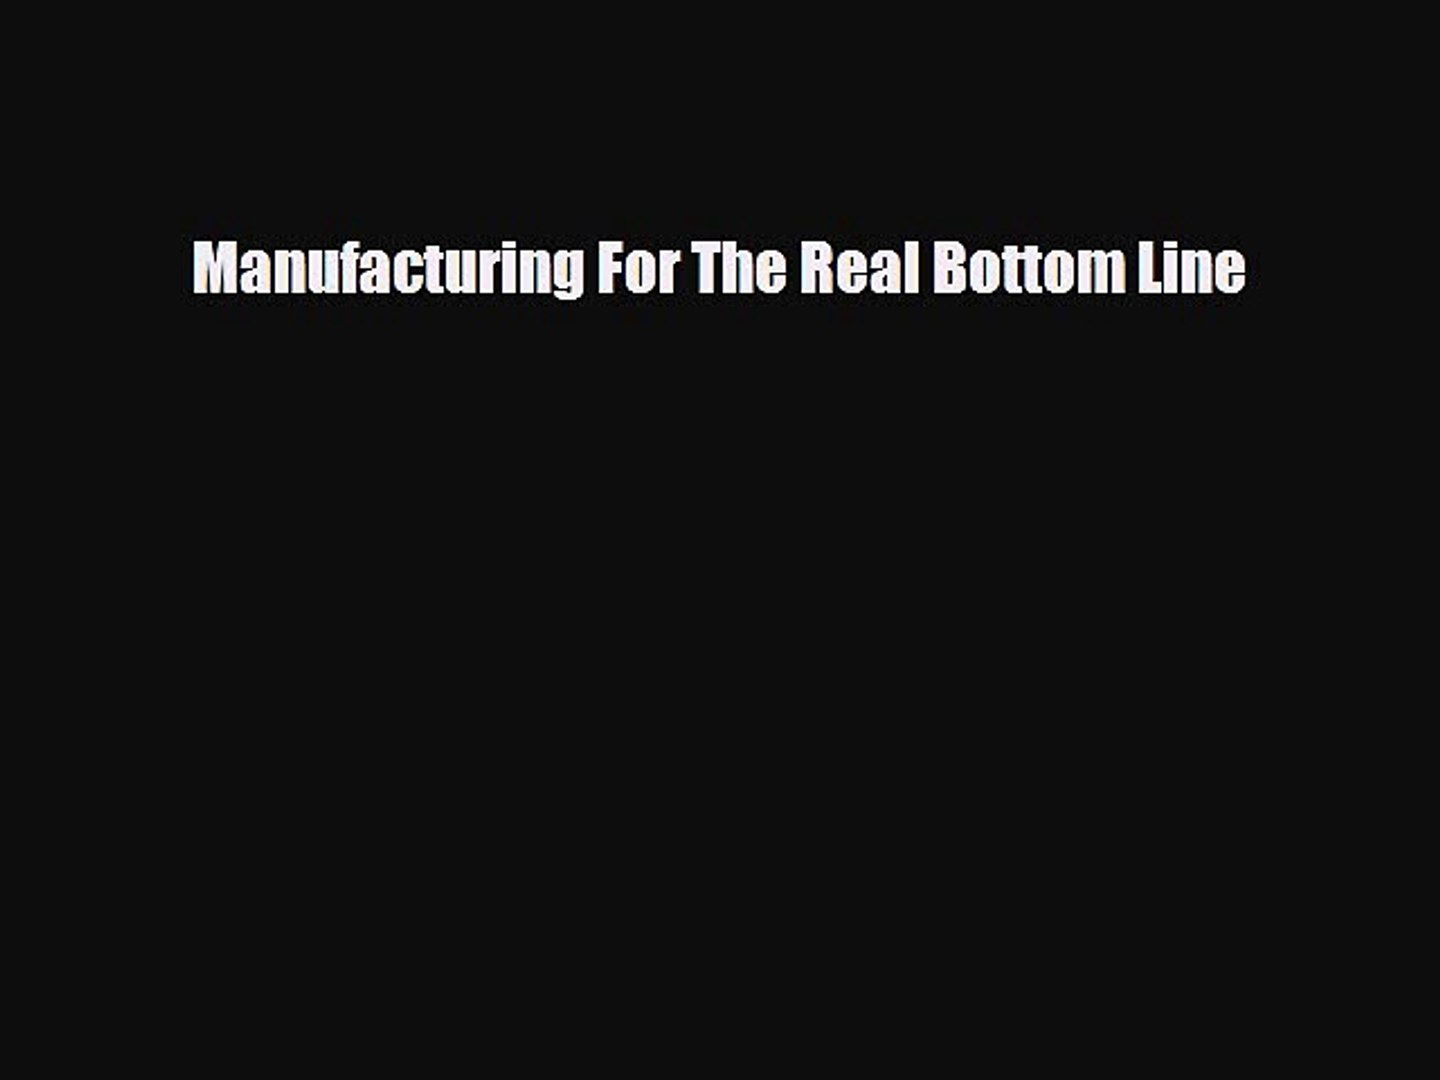 For you Manufacturing For The Real Bottom Line